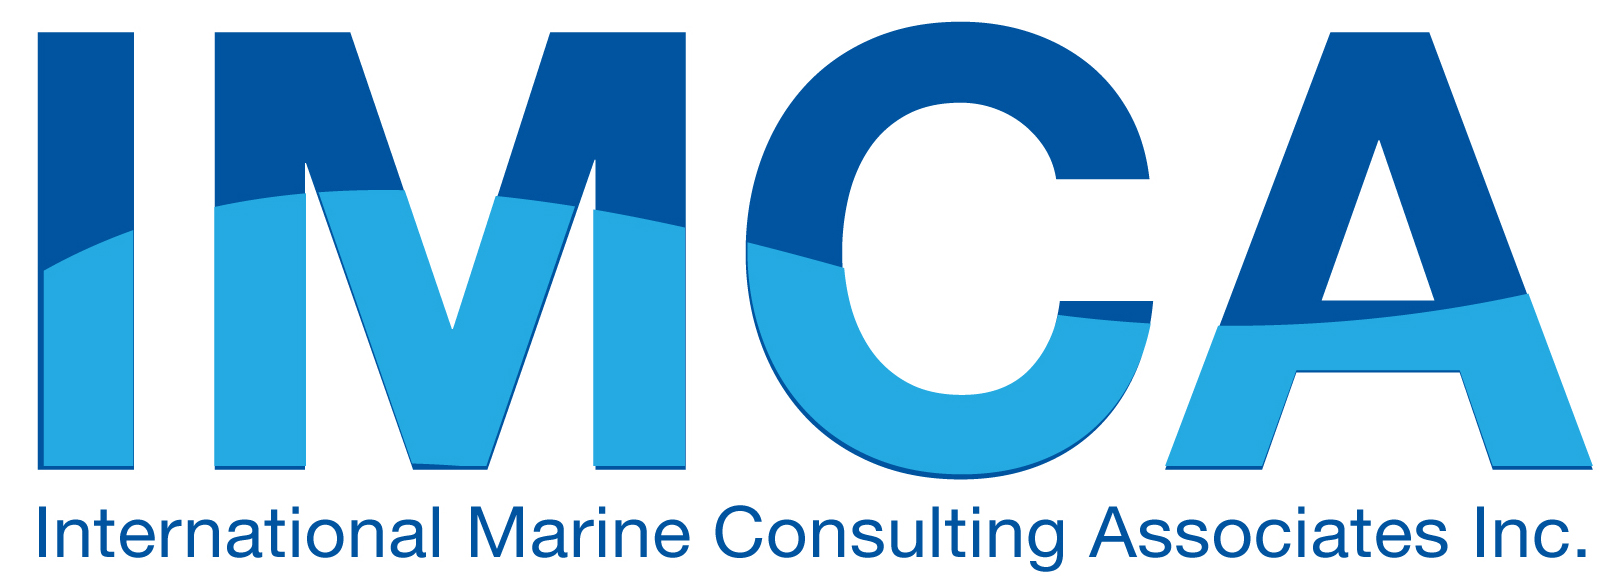 Testing Evaluation And Research International LLC (TER) Purchases International Marine Consulting Associates (IMCA)